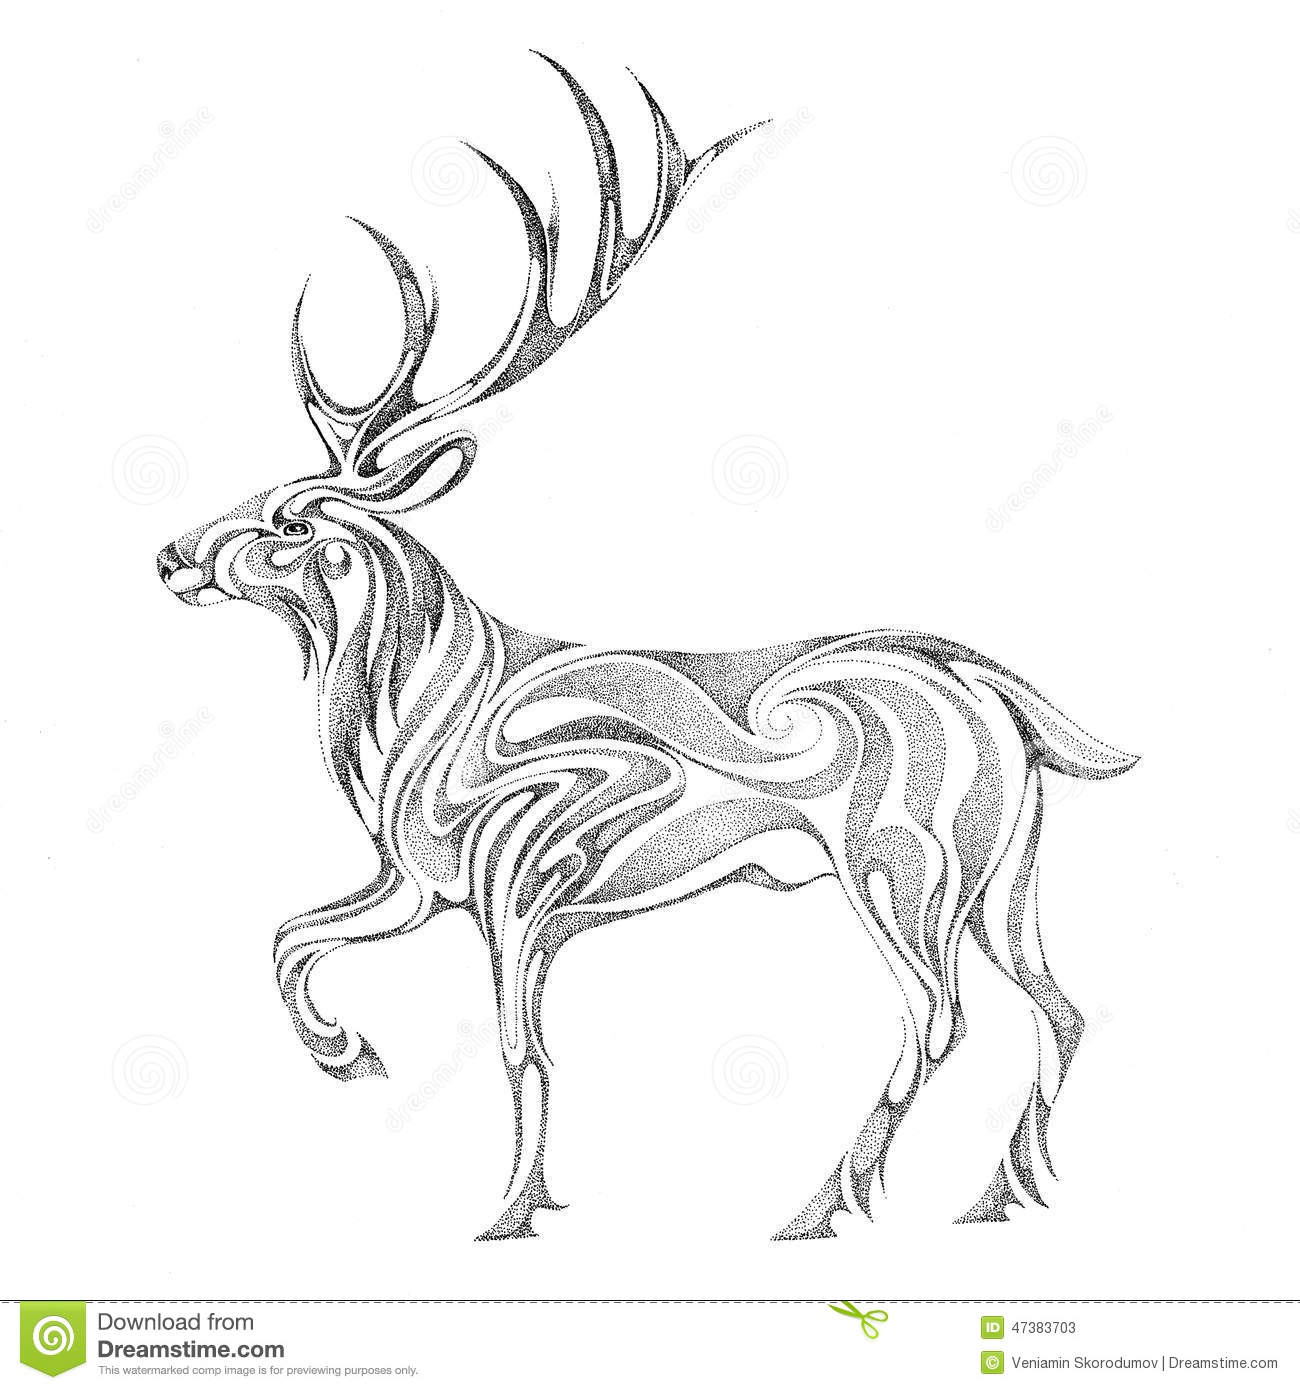 Wood Burning Ideas also Adult Coloring Pages Seasonal moreover Illustrazione Di Stock L Immagine Stilizzata Dei Cervi Della Foresta Image47383703 also Pipe Early1 additionally Christmas Template Or Pattern For A Reindeer. on wood burning